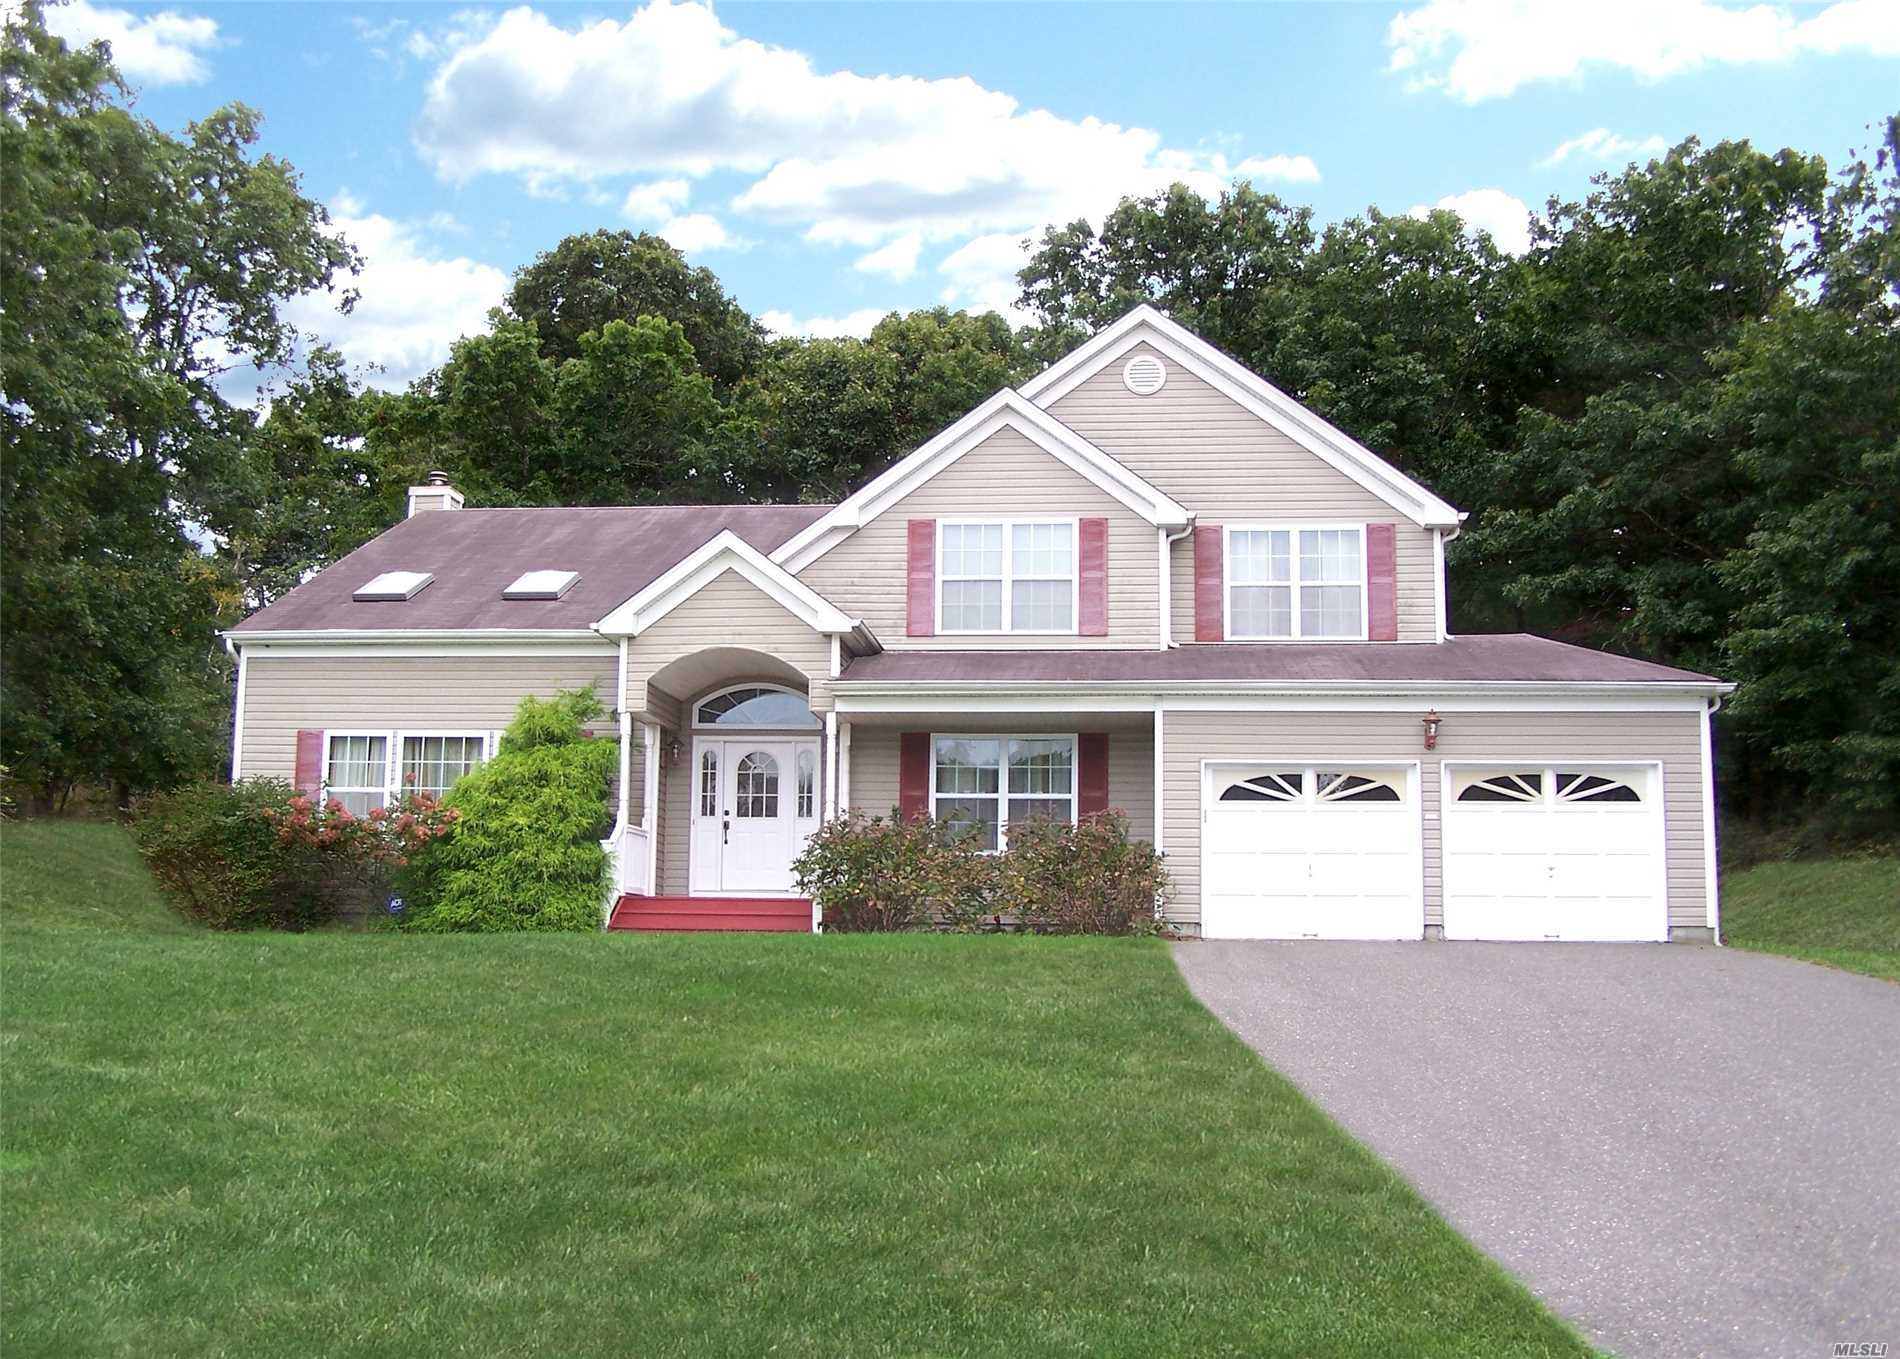 Photo of home for sale at 24 Ethel Ln, Medford NY